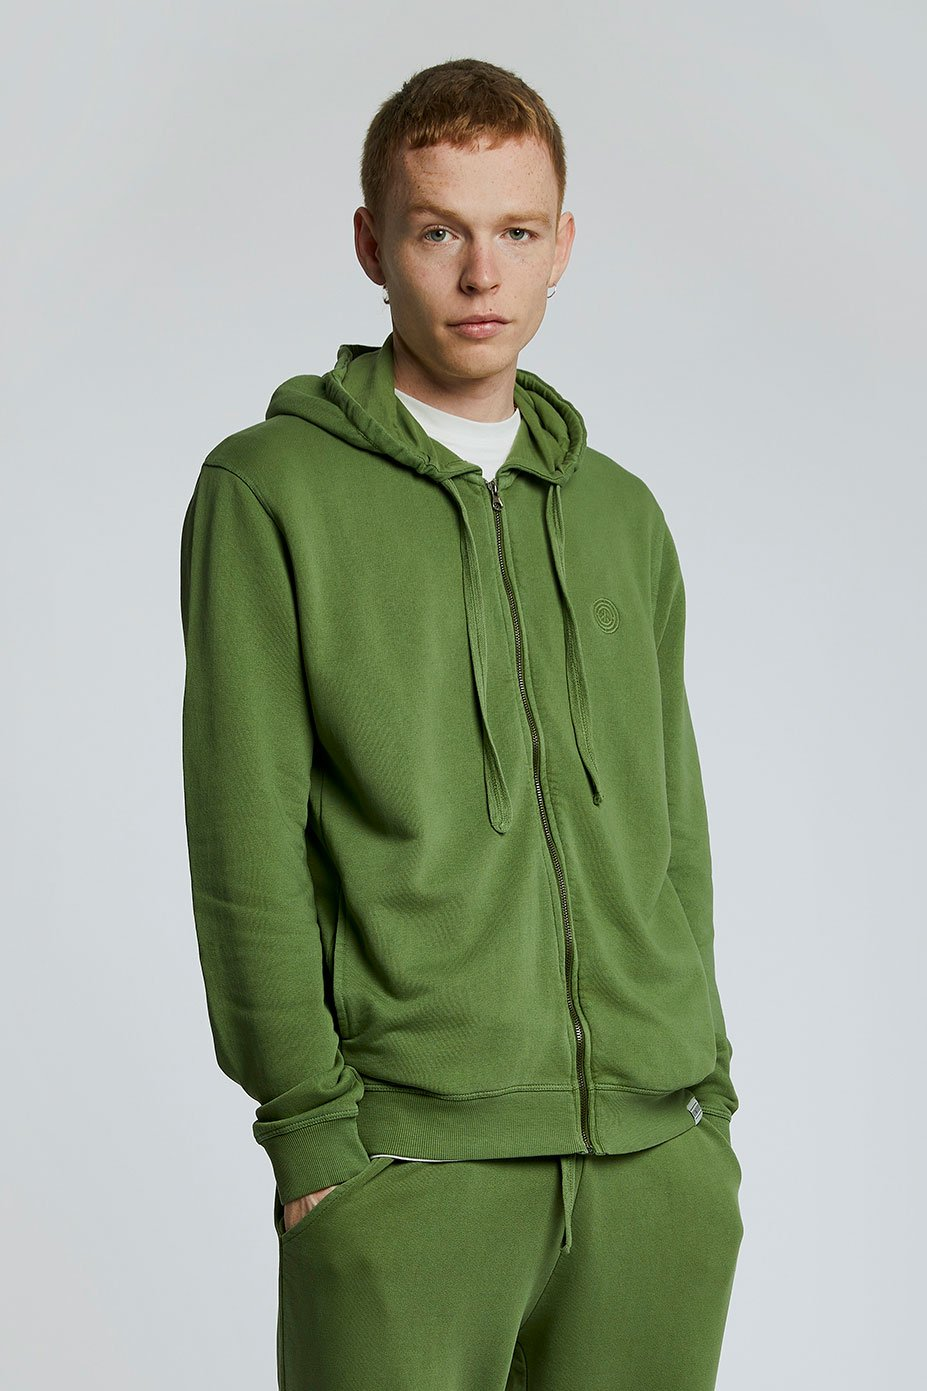 APOLLO Mens - GOTS Organic Cotton Zip Hoodie Olive